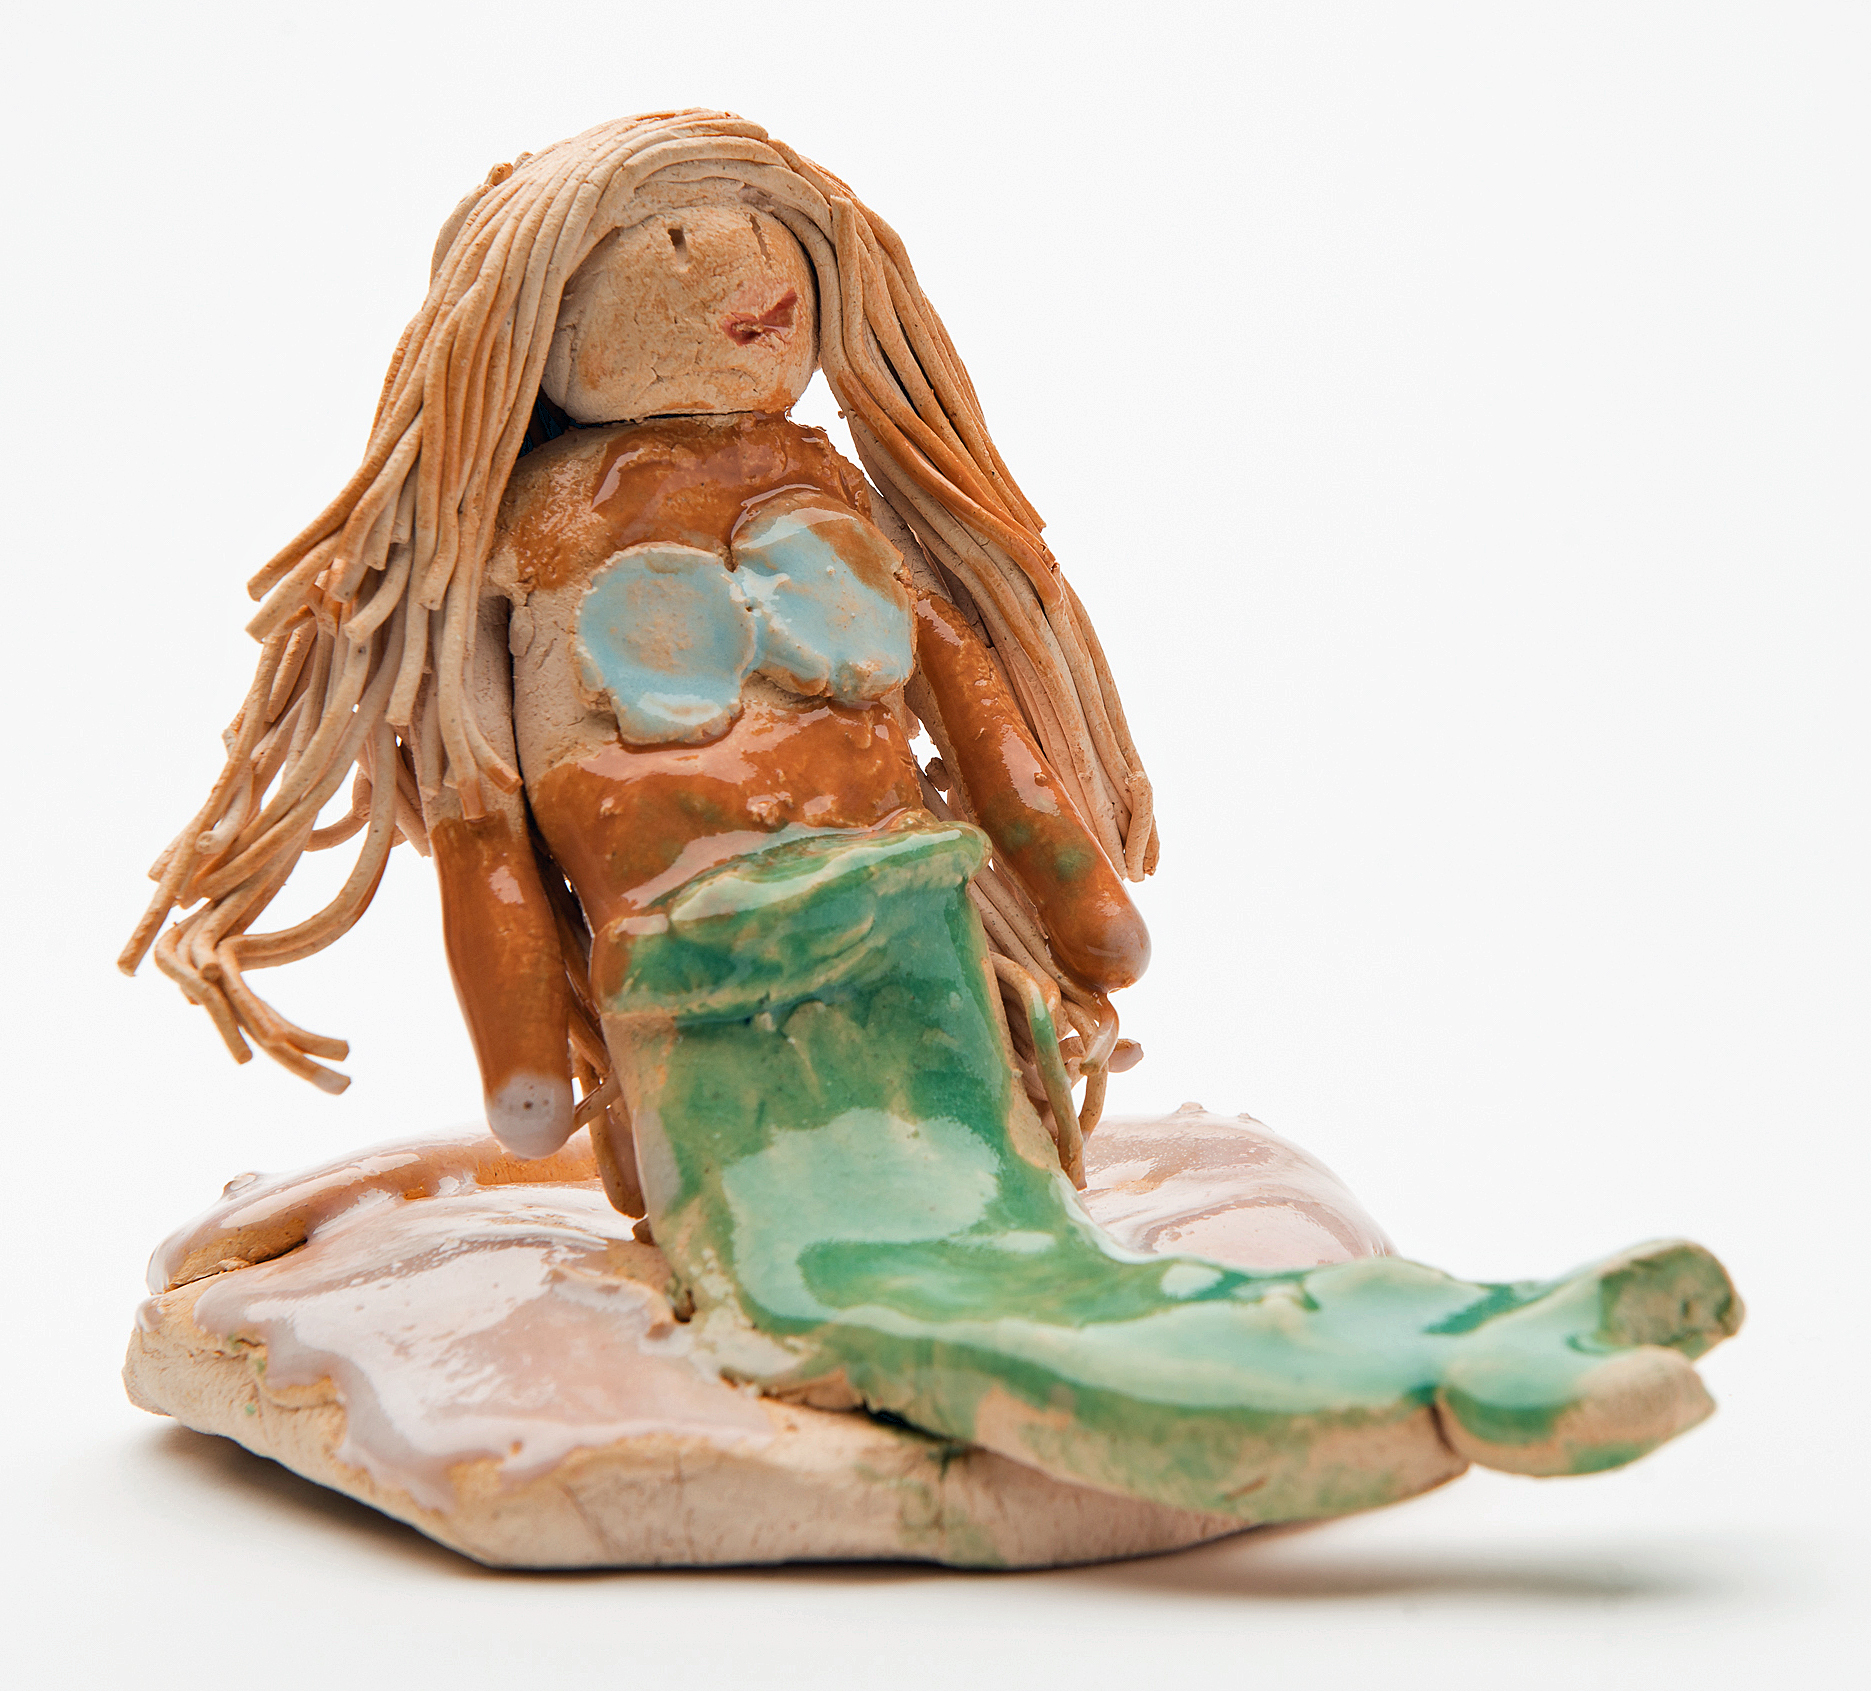 7 Clay Mermaid - Kids Like Clay.jpg